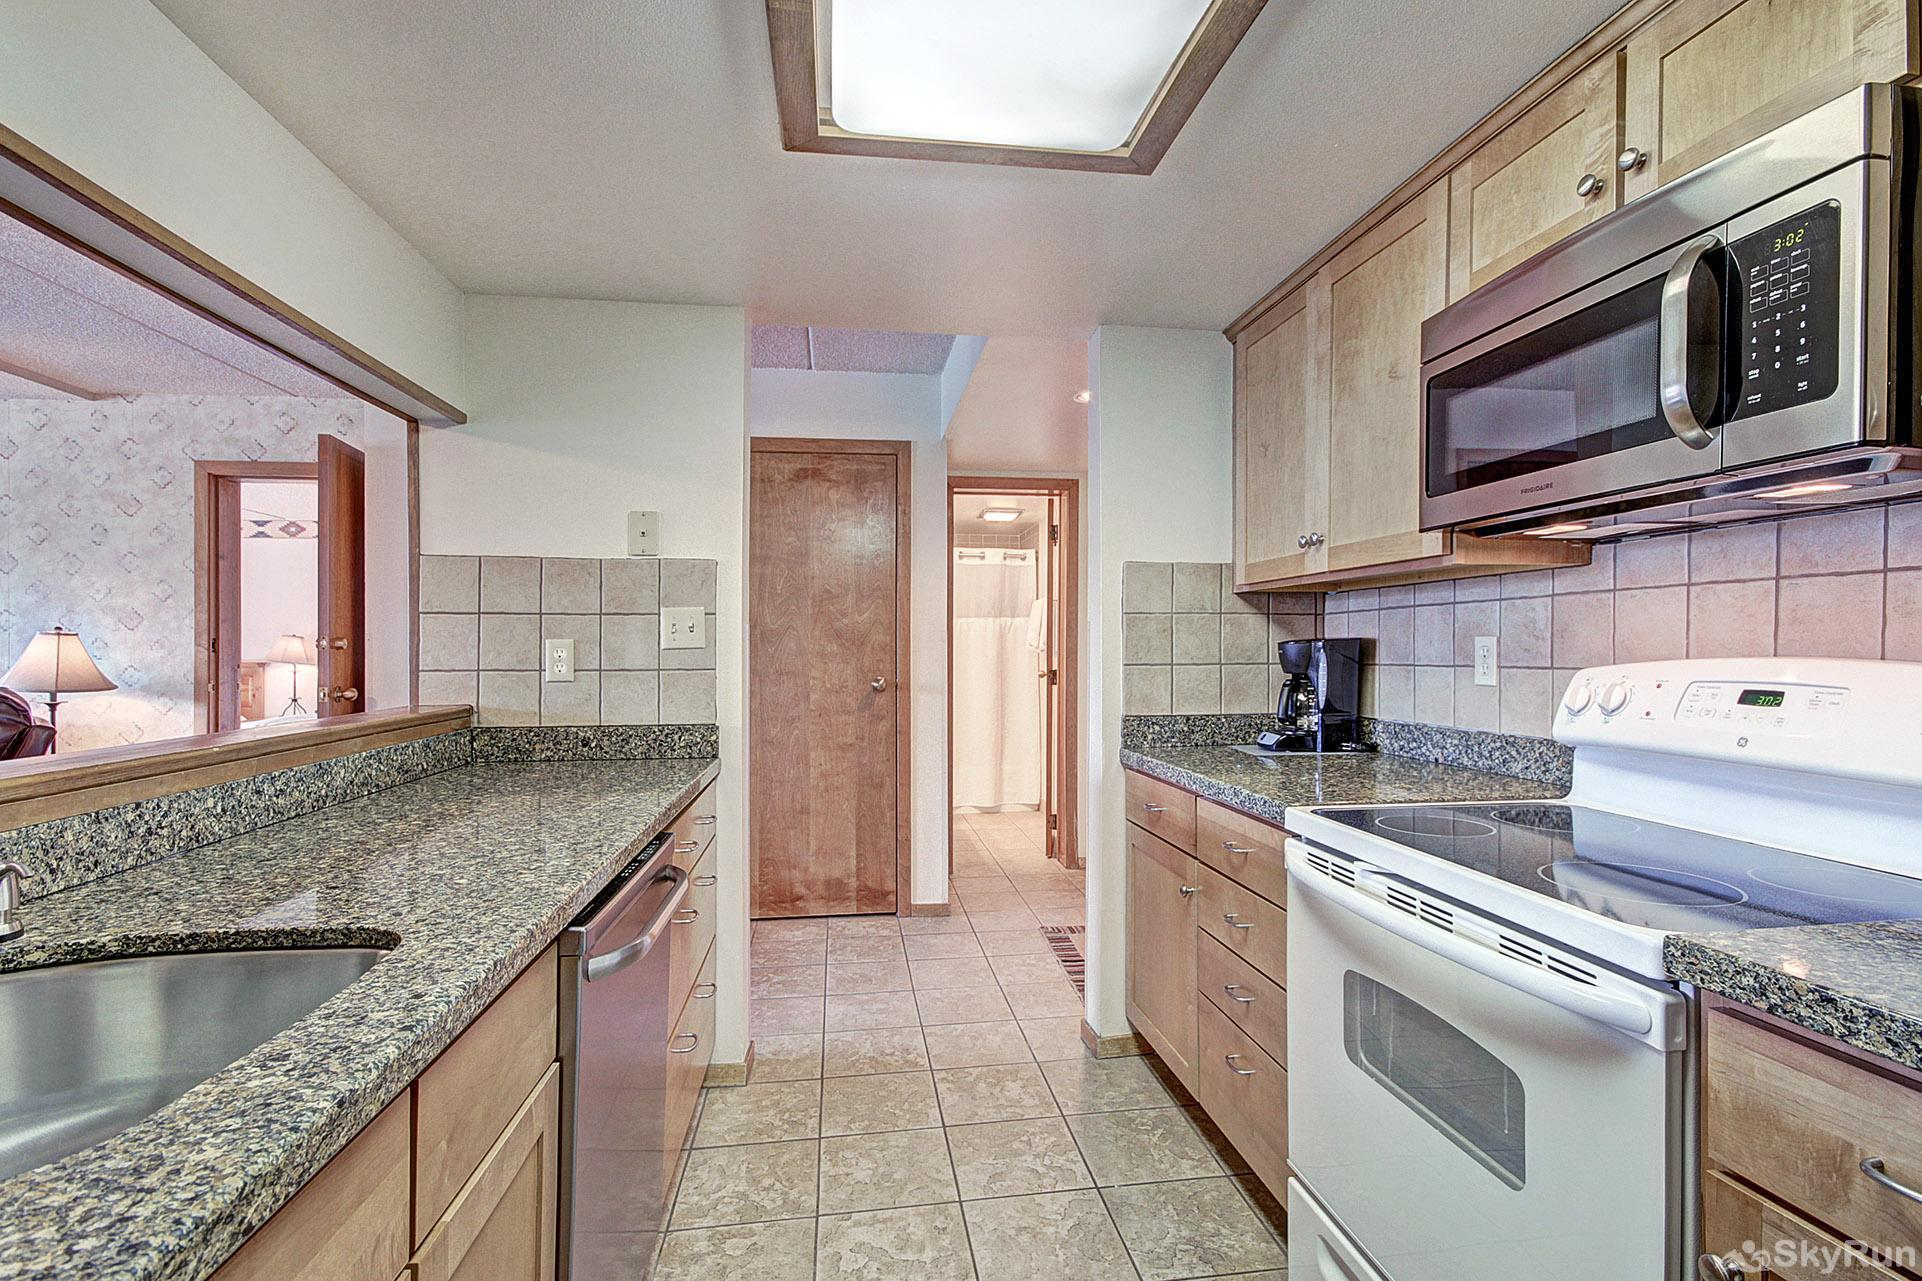 VS438 and 436H Village Square Beautiful Fully Equipped Kitchen